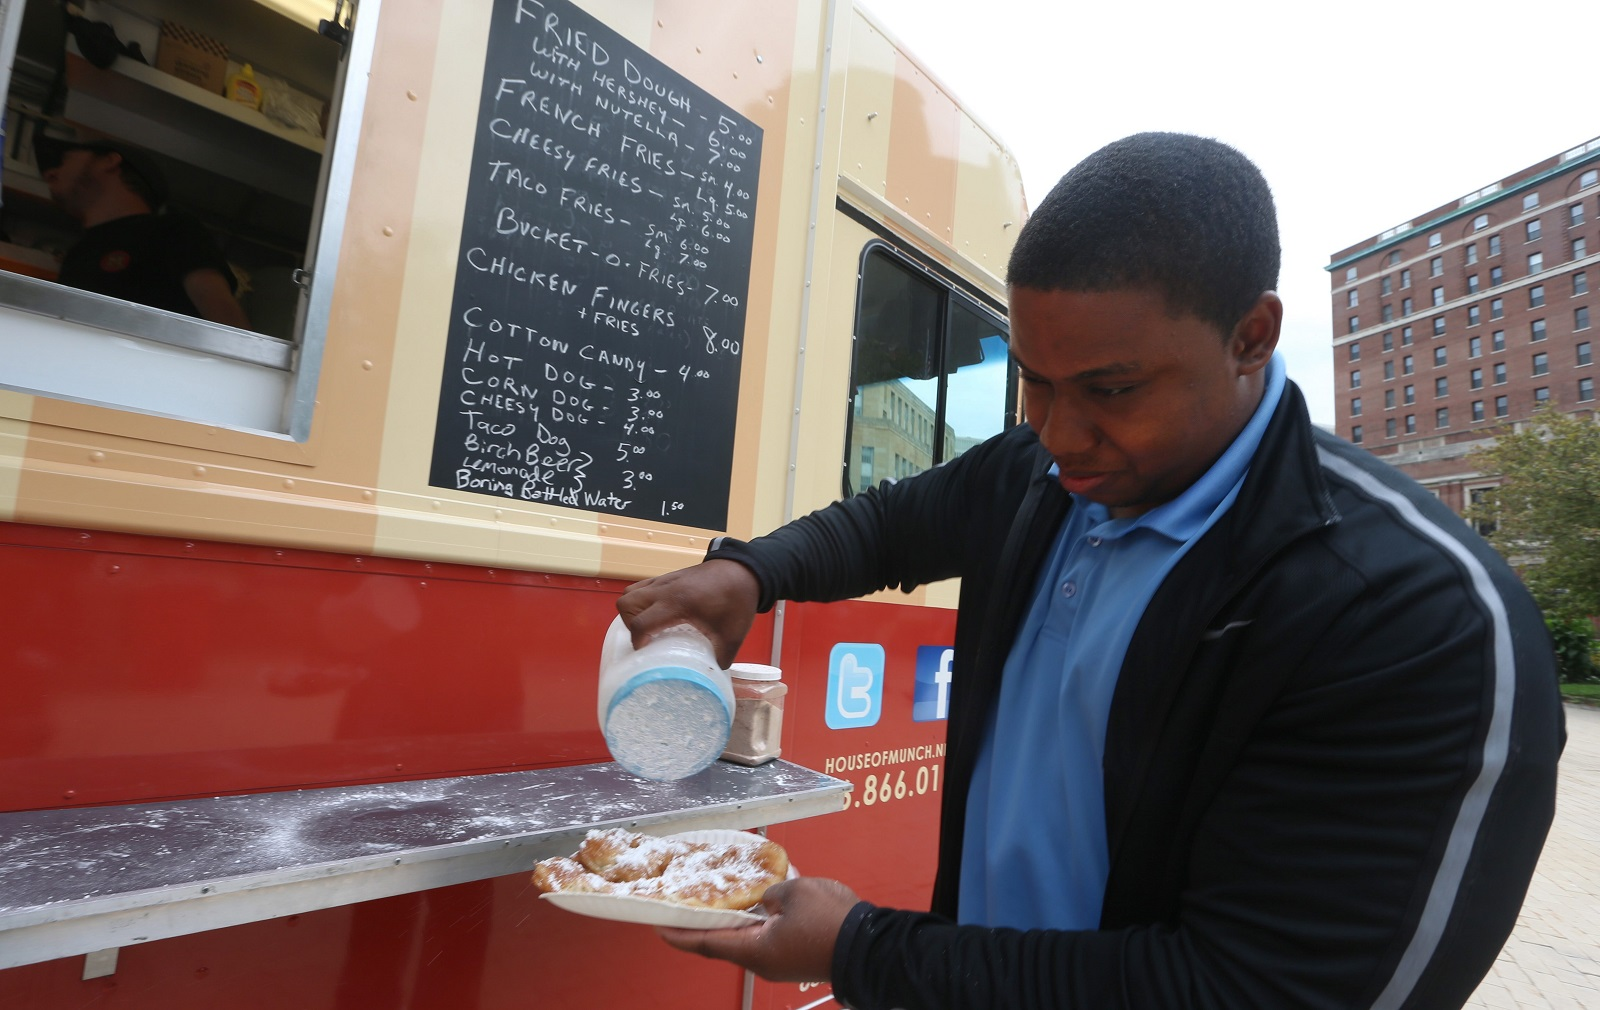 Isaiah Goins puts powdered sugar on fried dough at the House of Munch at Food Truck Thursday at Niagara Square in August 2015. (John Hickey/Buffalo News)